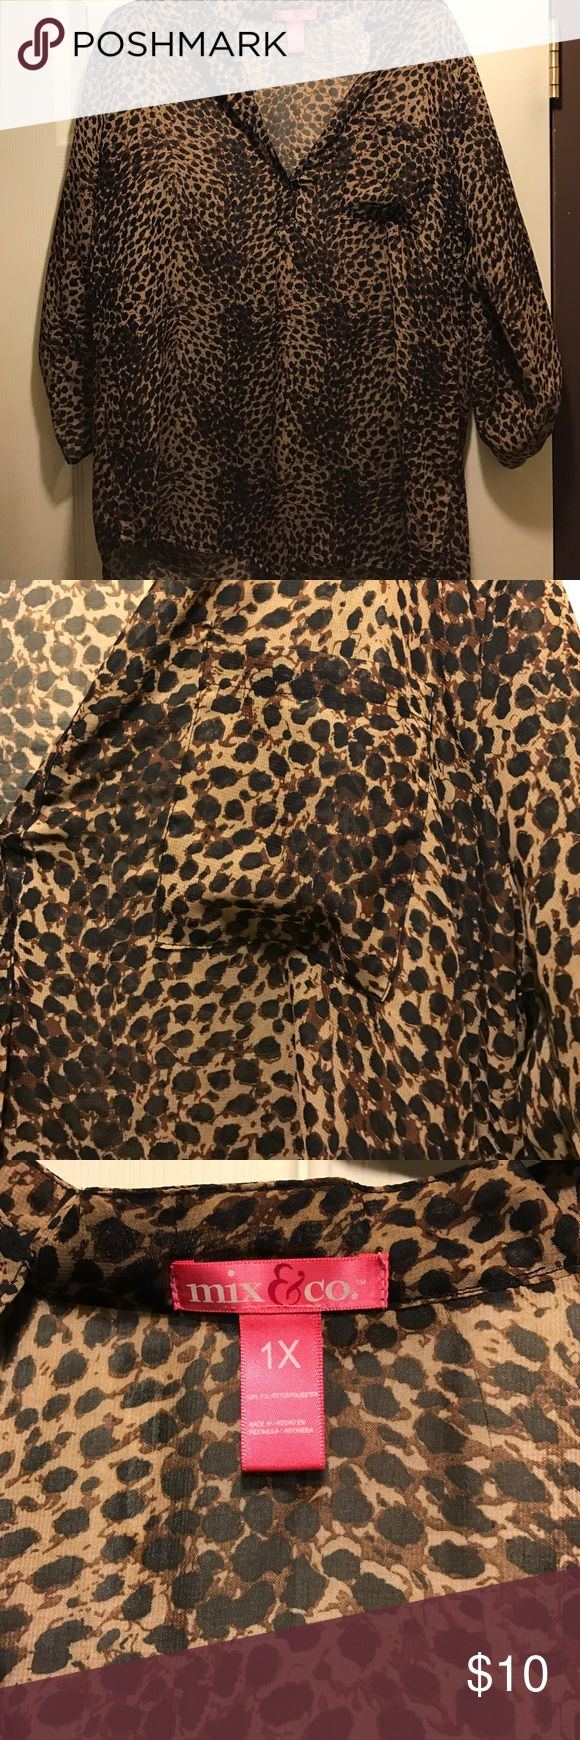 Leopard shirt Sheer leopard shirt, just don't get wore enough, in great condition, fits a size Large-1X Tops